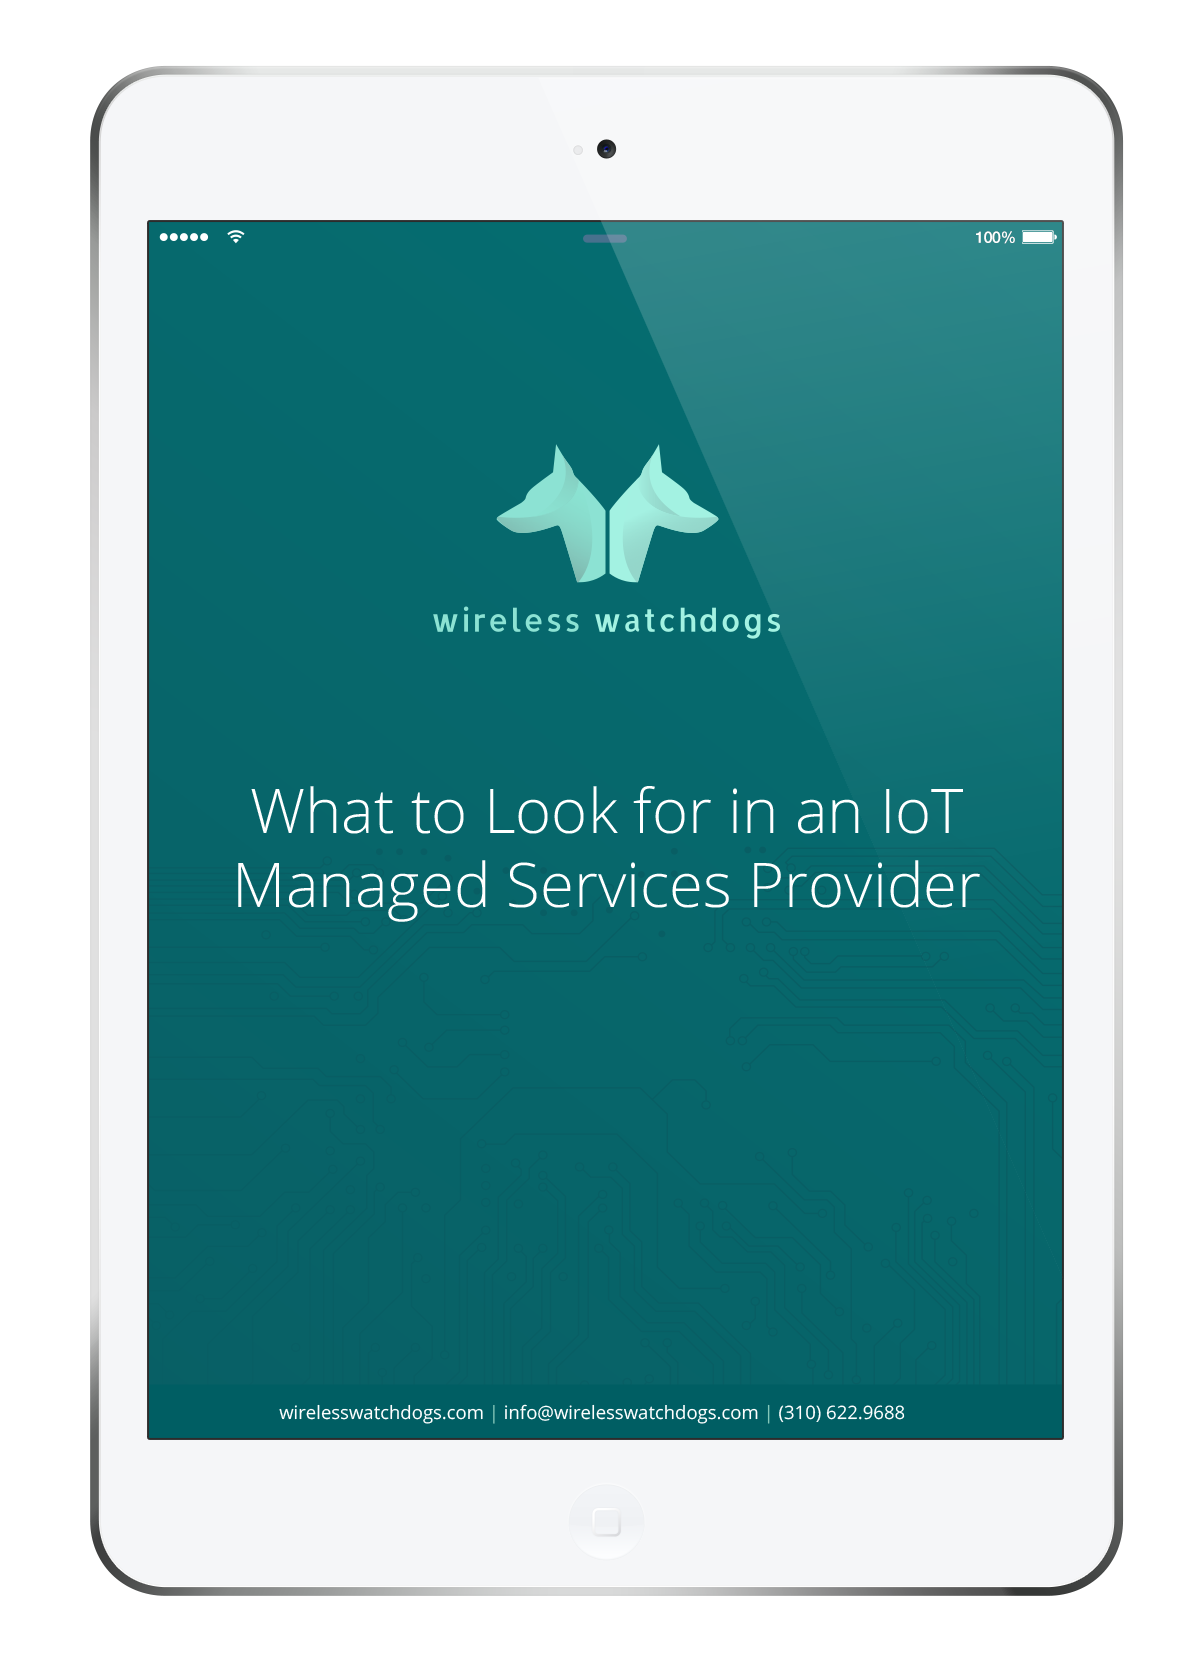 Mockup-LP_WW_WP_CN_what-to-look-for-IoT-MSP.png